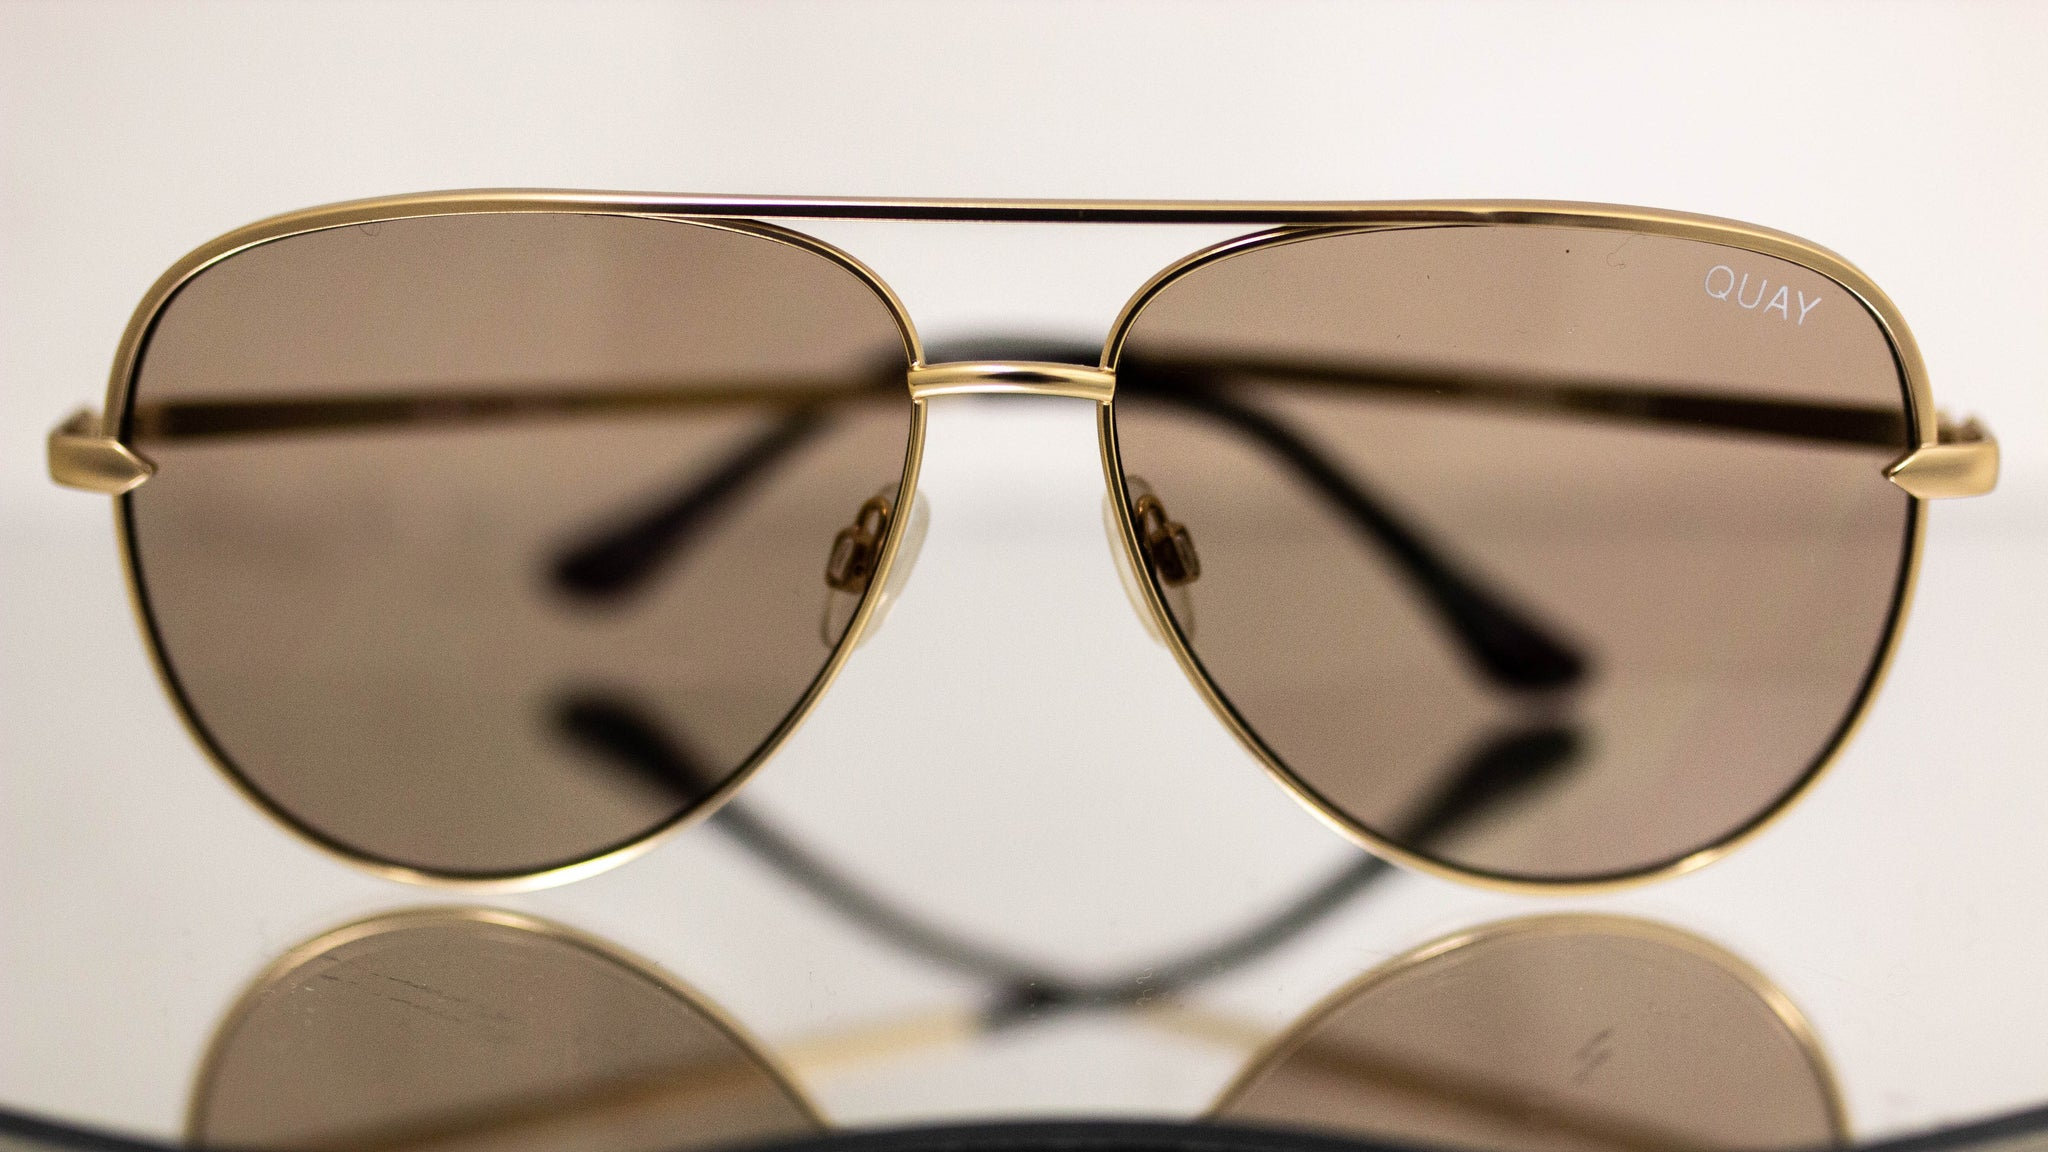 SAHARA GOLD QUAY SUNGLASSES